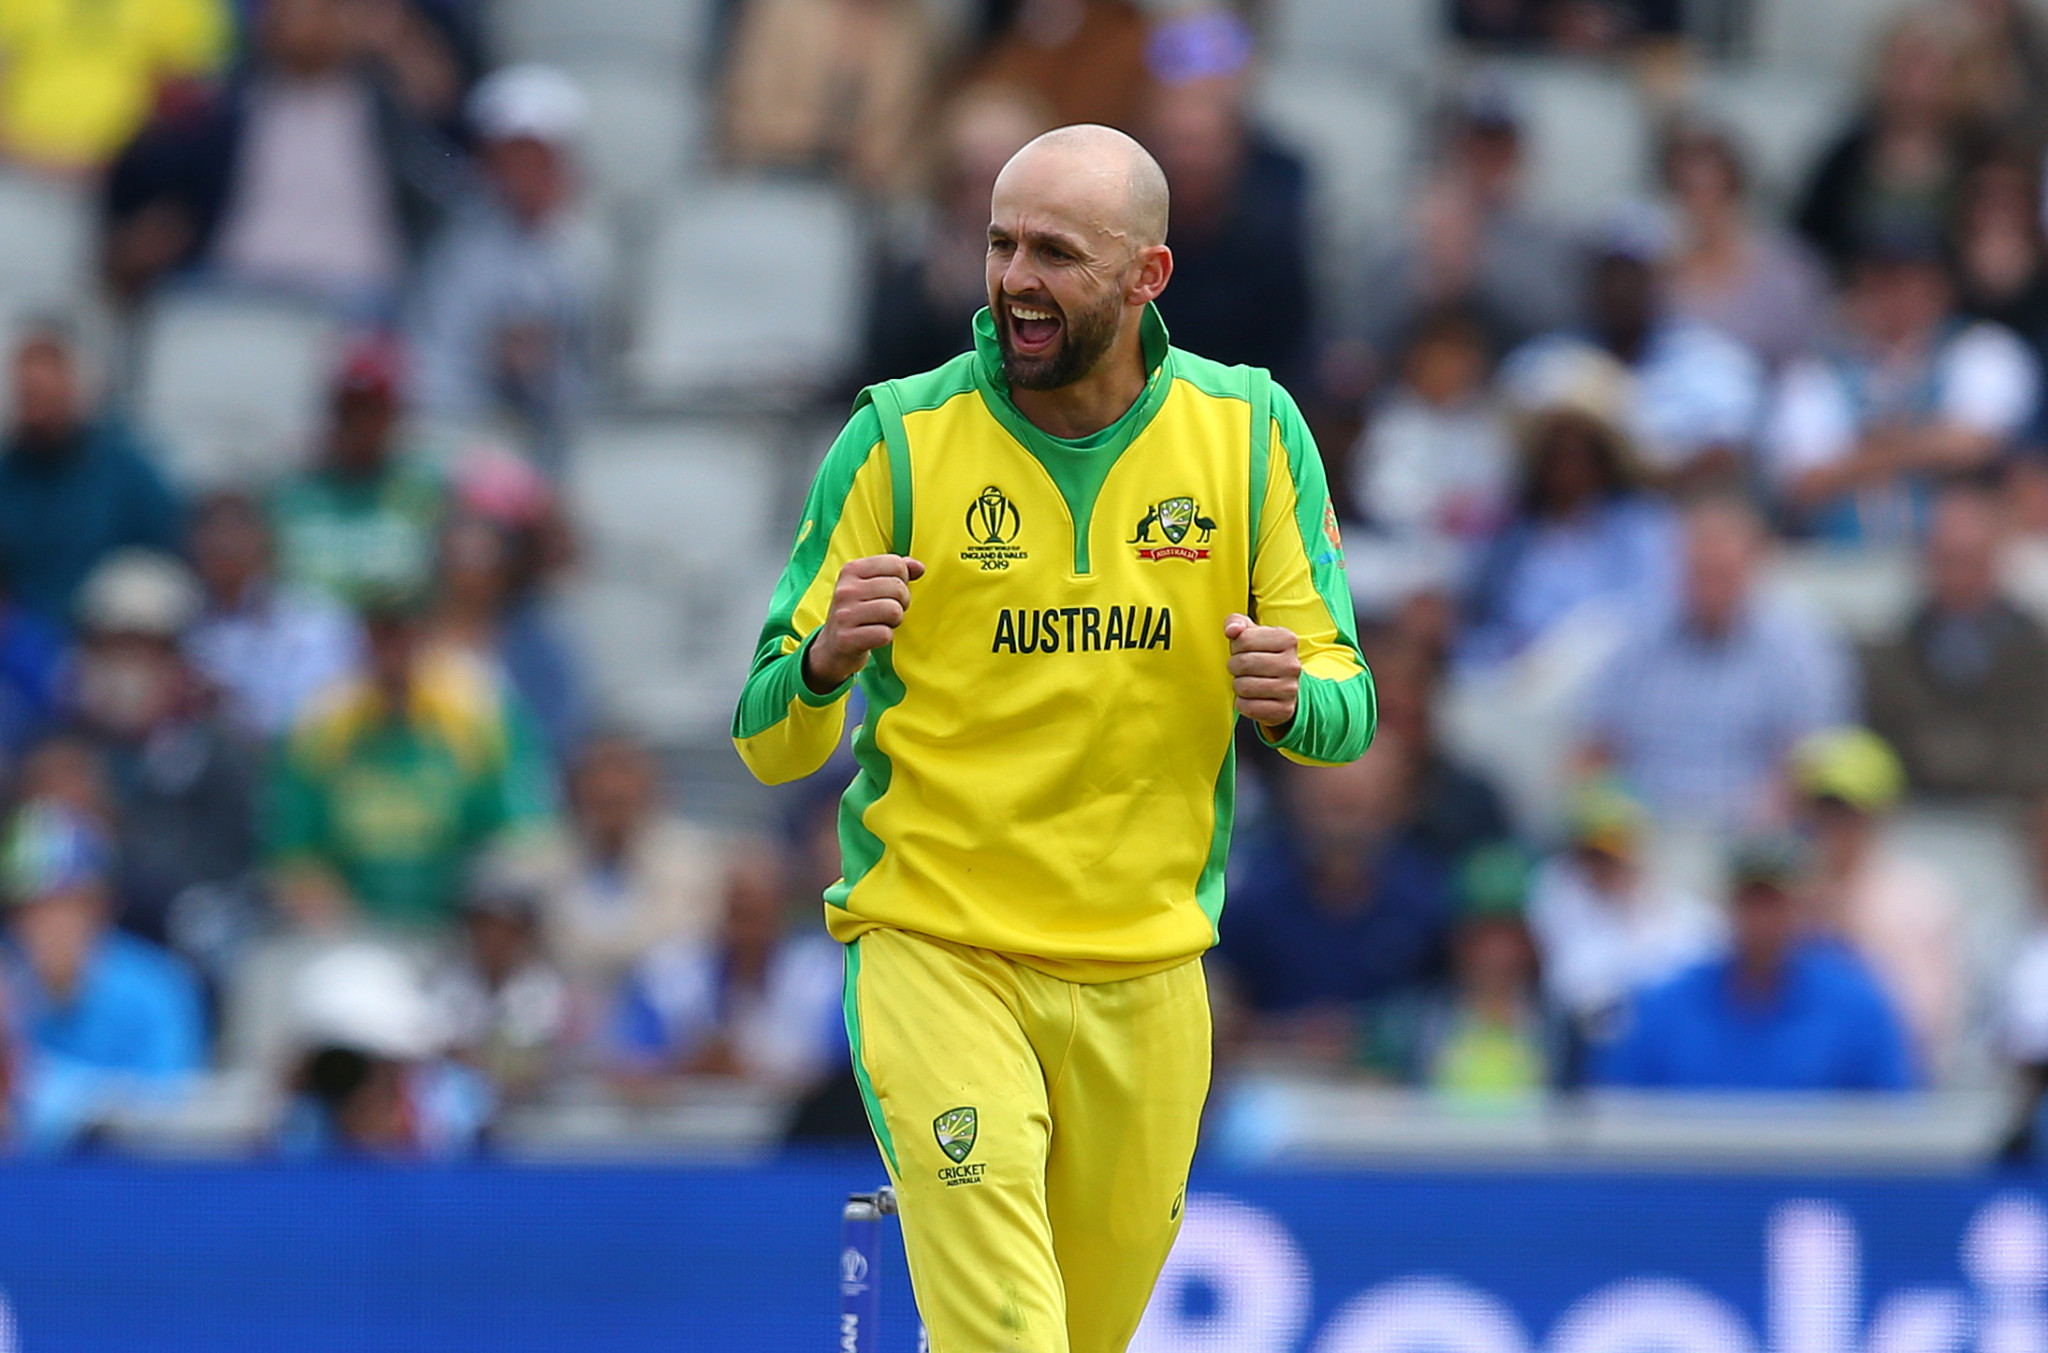 Australia spinner Nathan Lyon has claimed the Cricket World Cup is England's to lose ahead of their semi-final ©Getty Images